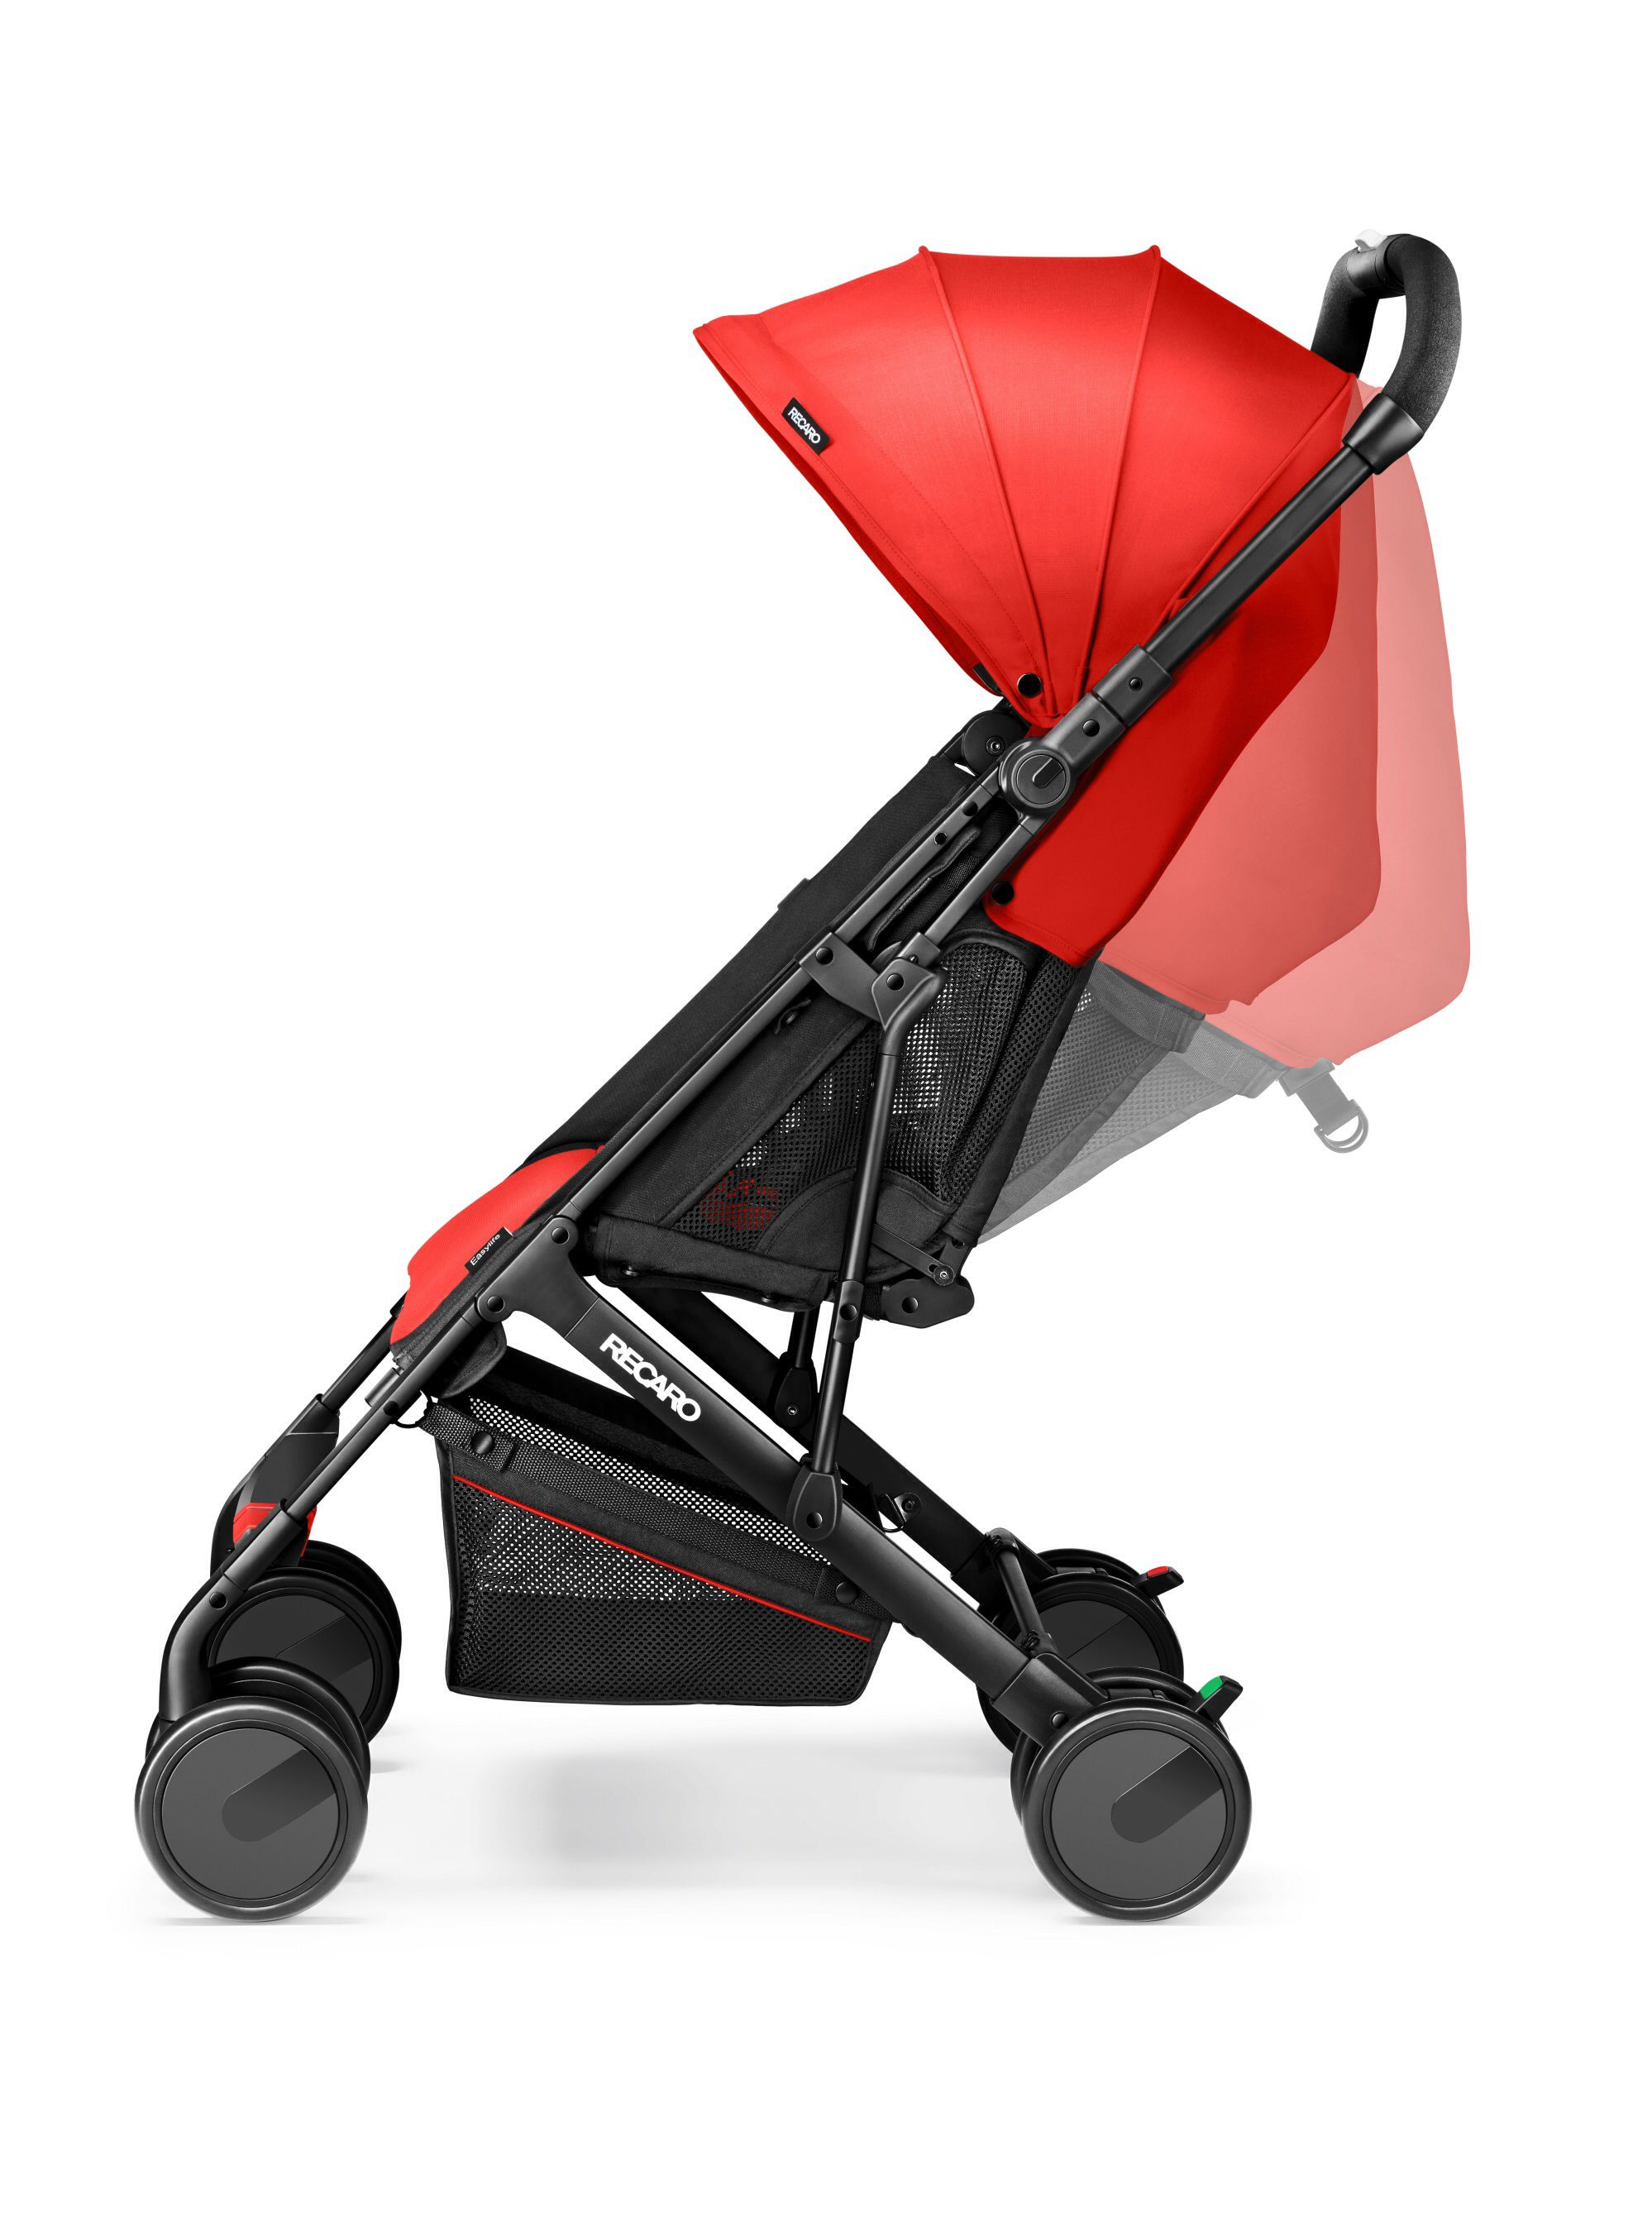 Silla De Paseo Recaro Recaro Easylife Red With Reclining Backrest Stroller Baby